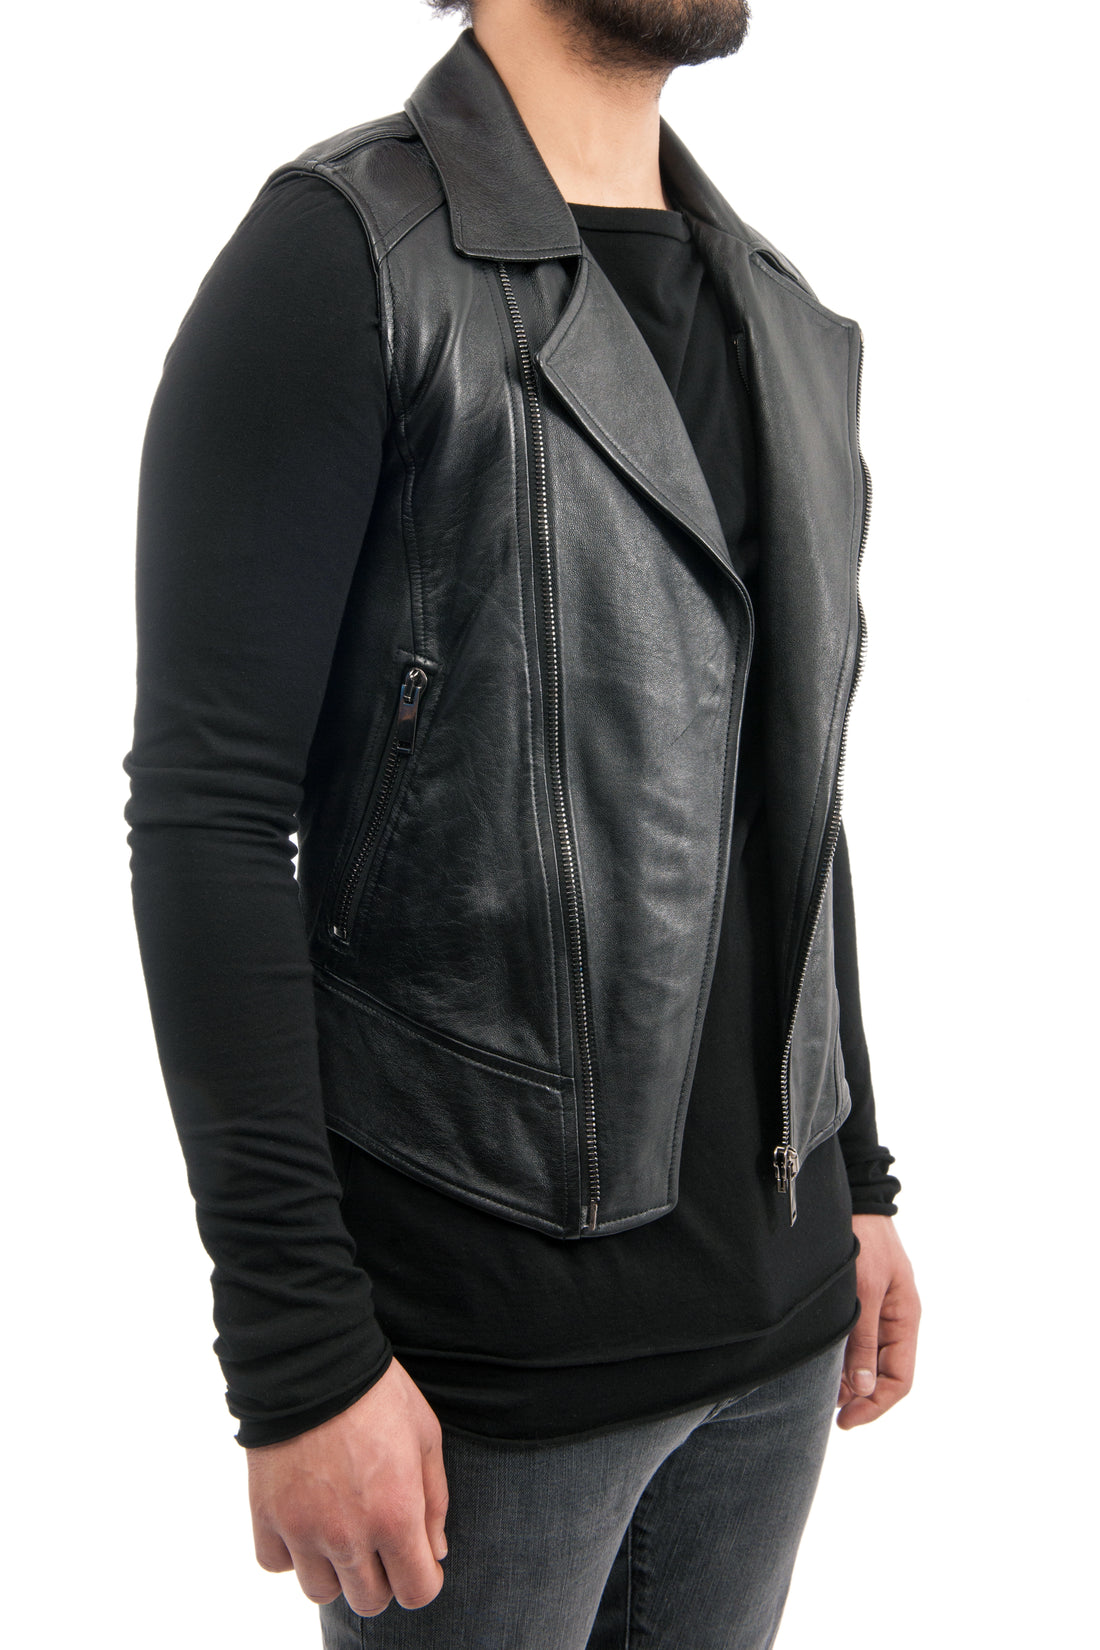 Gareth Pugh Black Leather Motorcycle Zip Vest